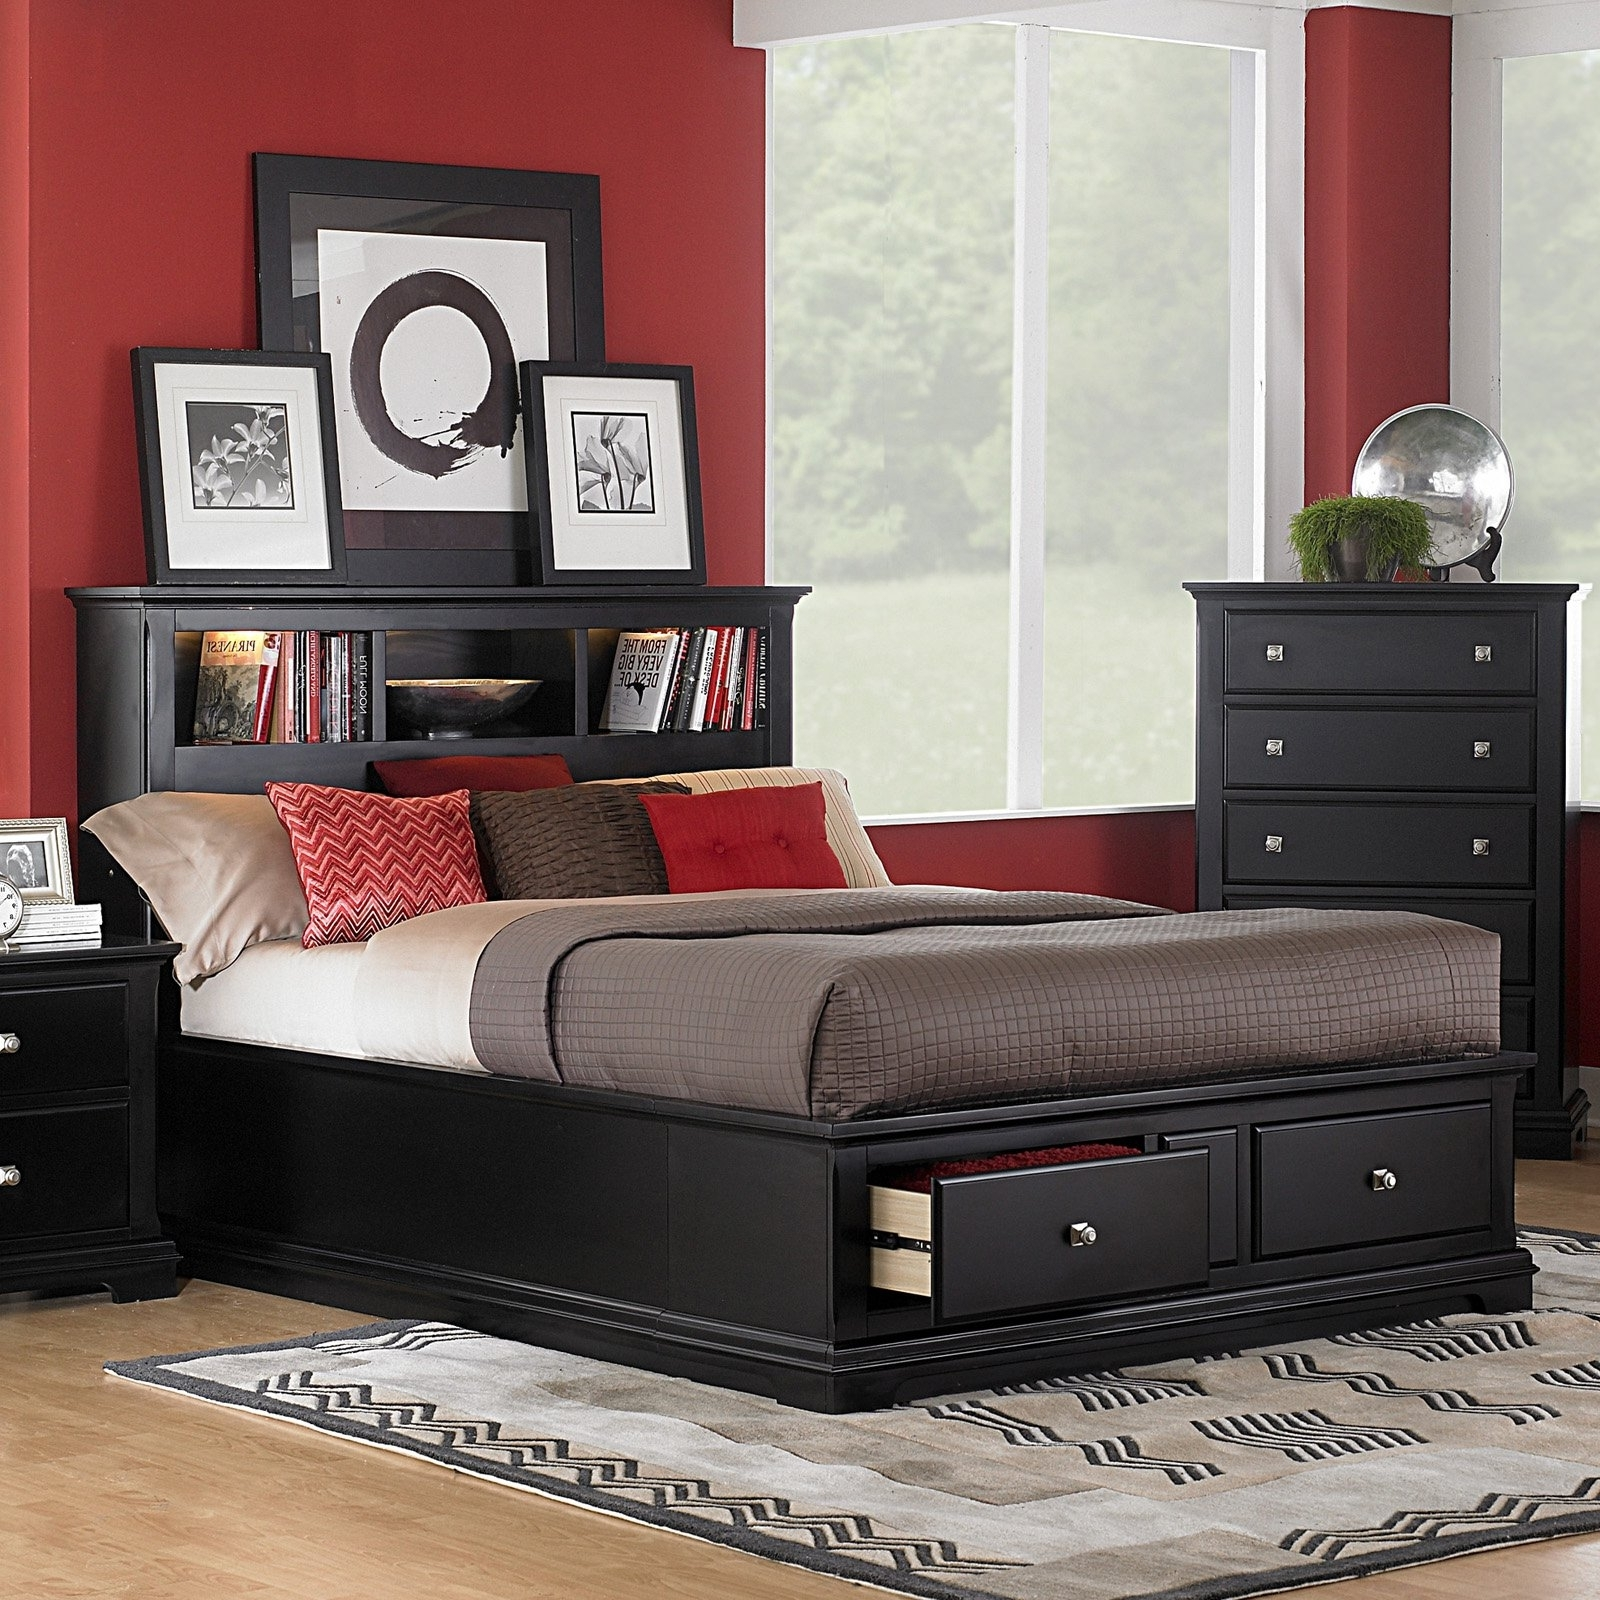 Well Known King Size Bookcases Headboard Within Black Wooden King Size Bed Frame With Drawer Storage And Bookcase (View 14 of 15)